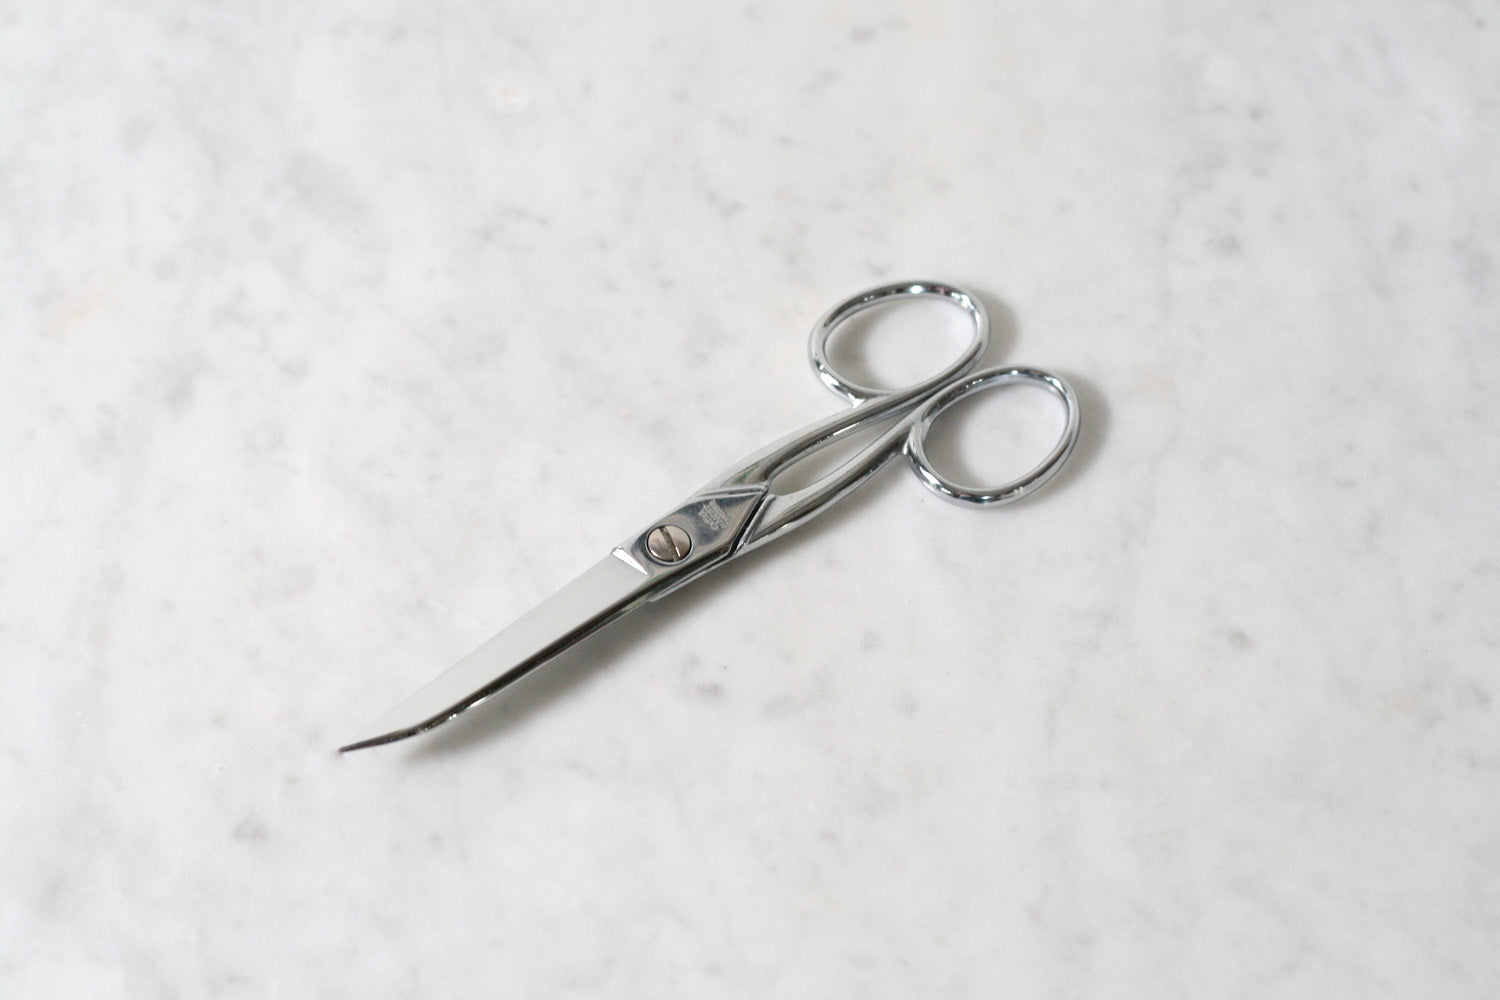 French Household Scissors. Made in France.